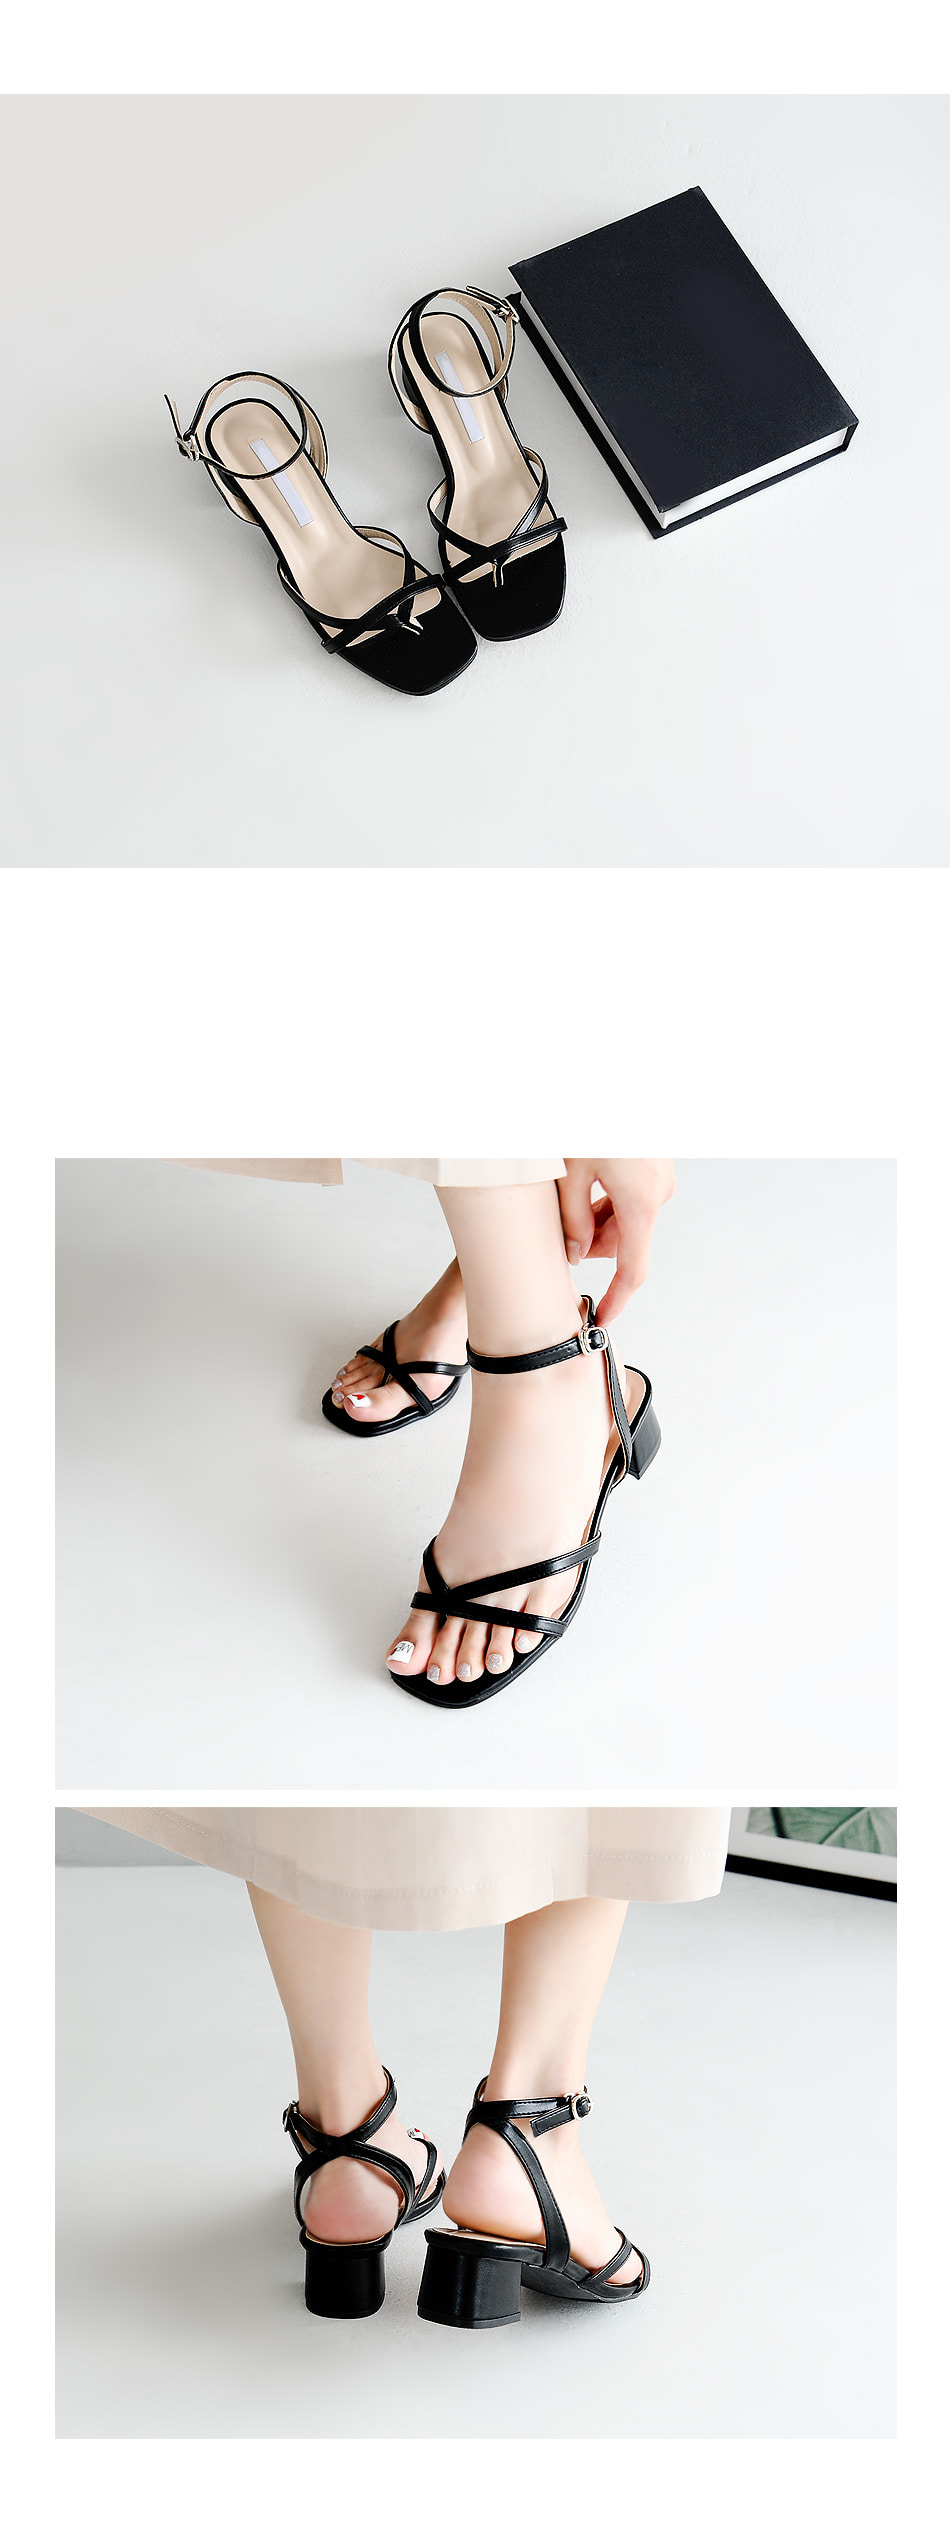 Belly strap sandals 4cm